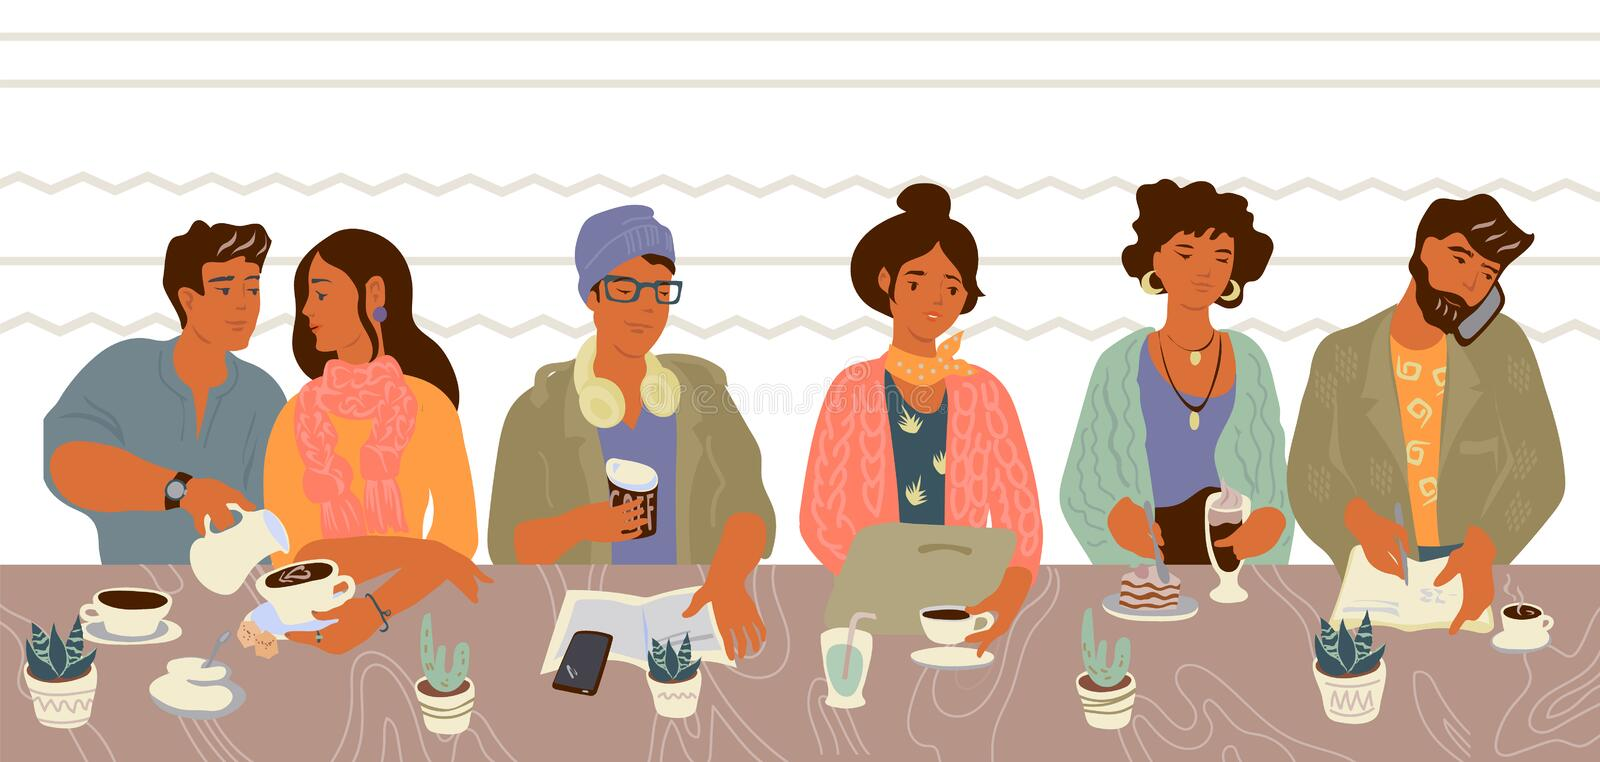 People in cafe on lunch or coffee break - communicating and using gadgets. vector illustration